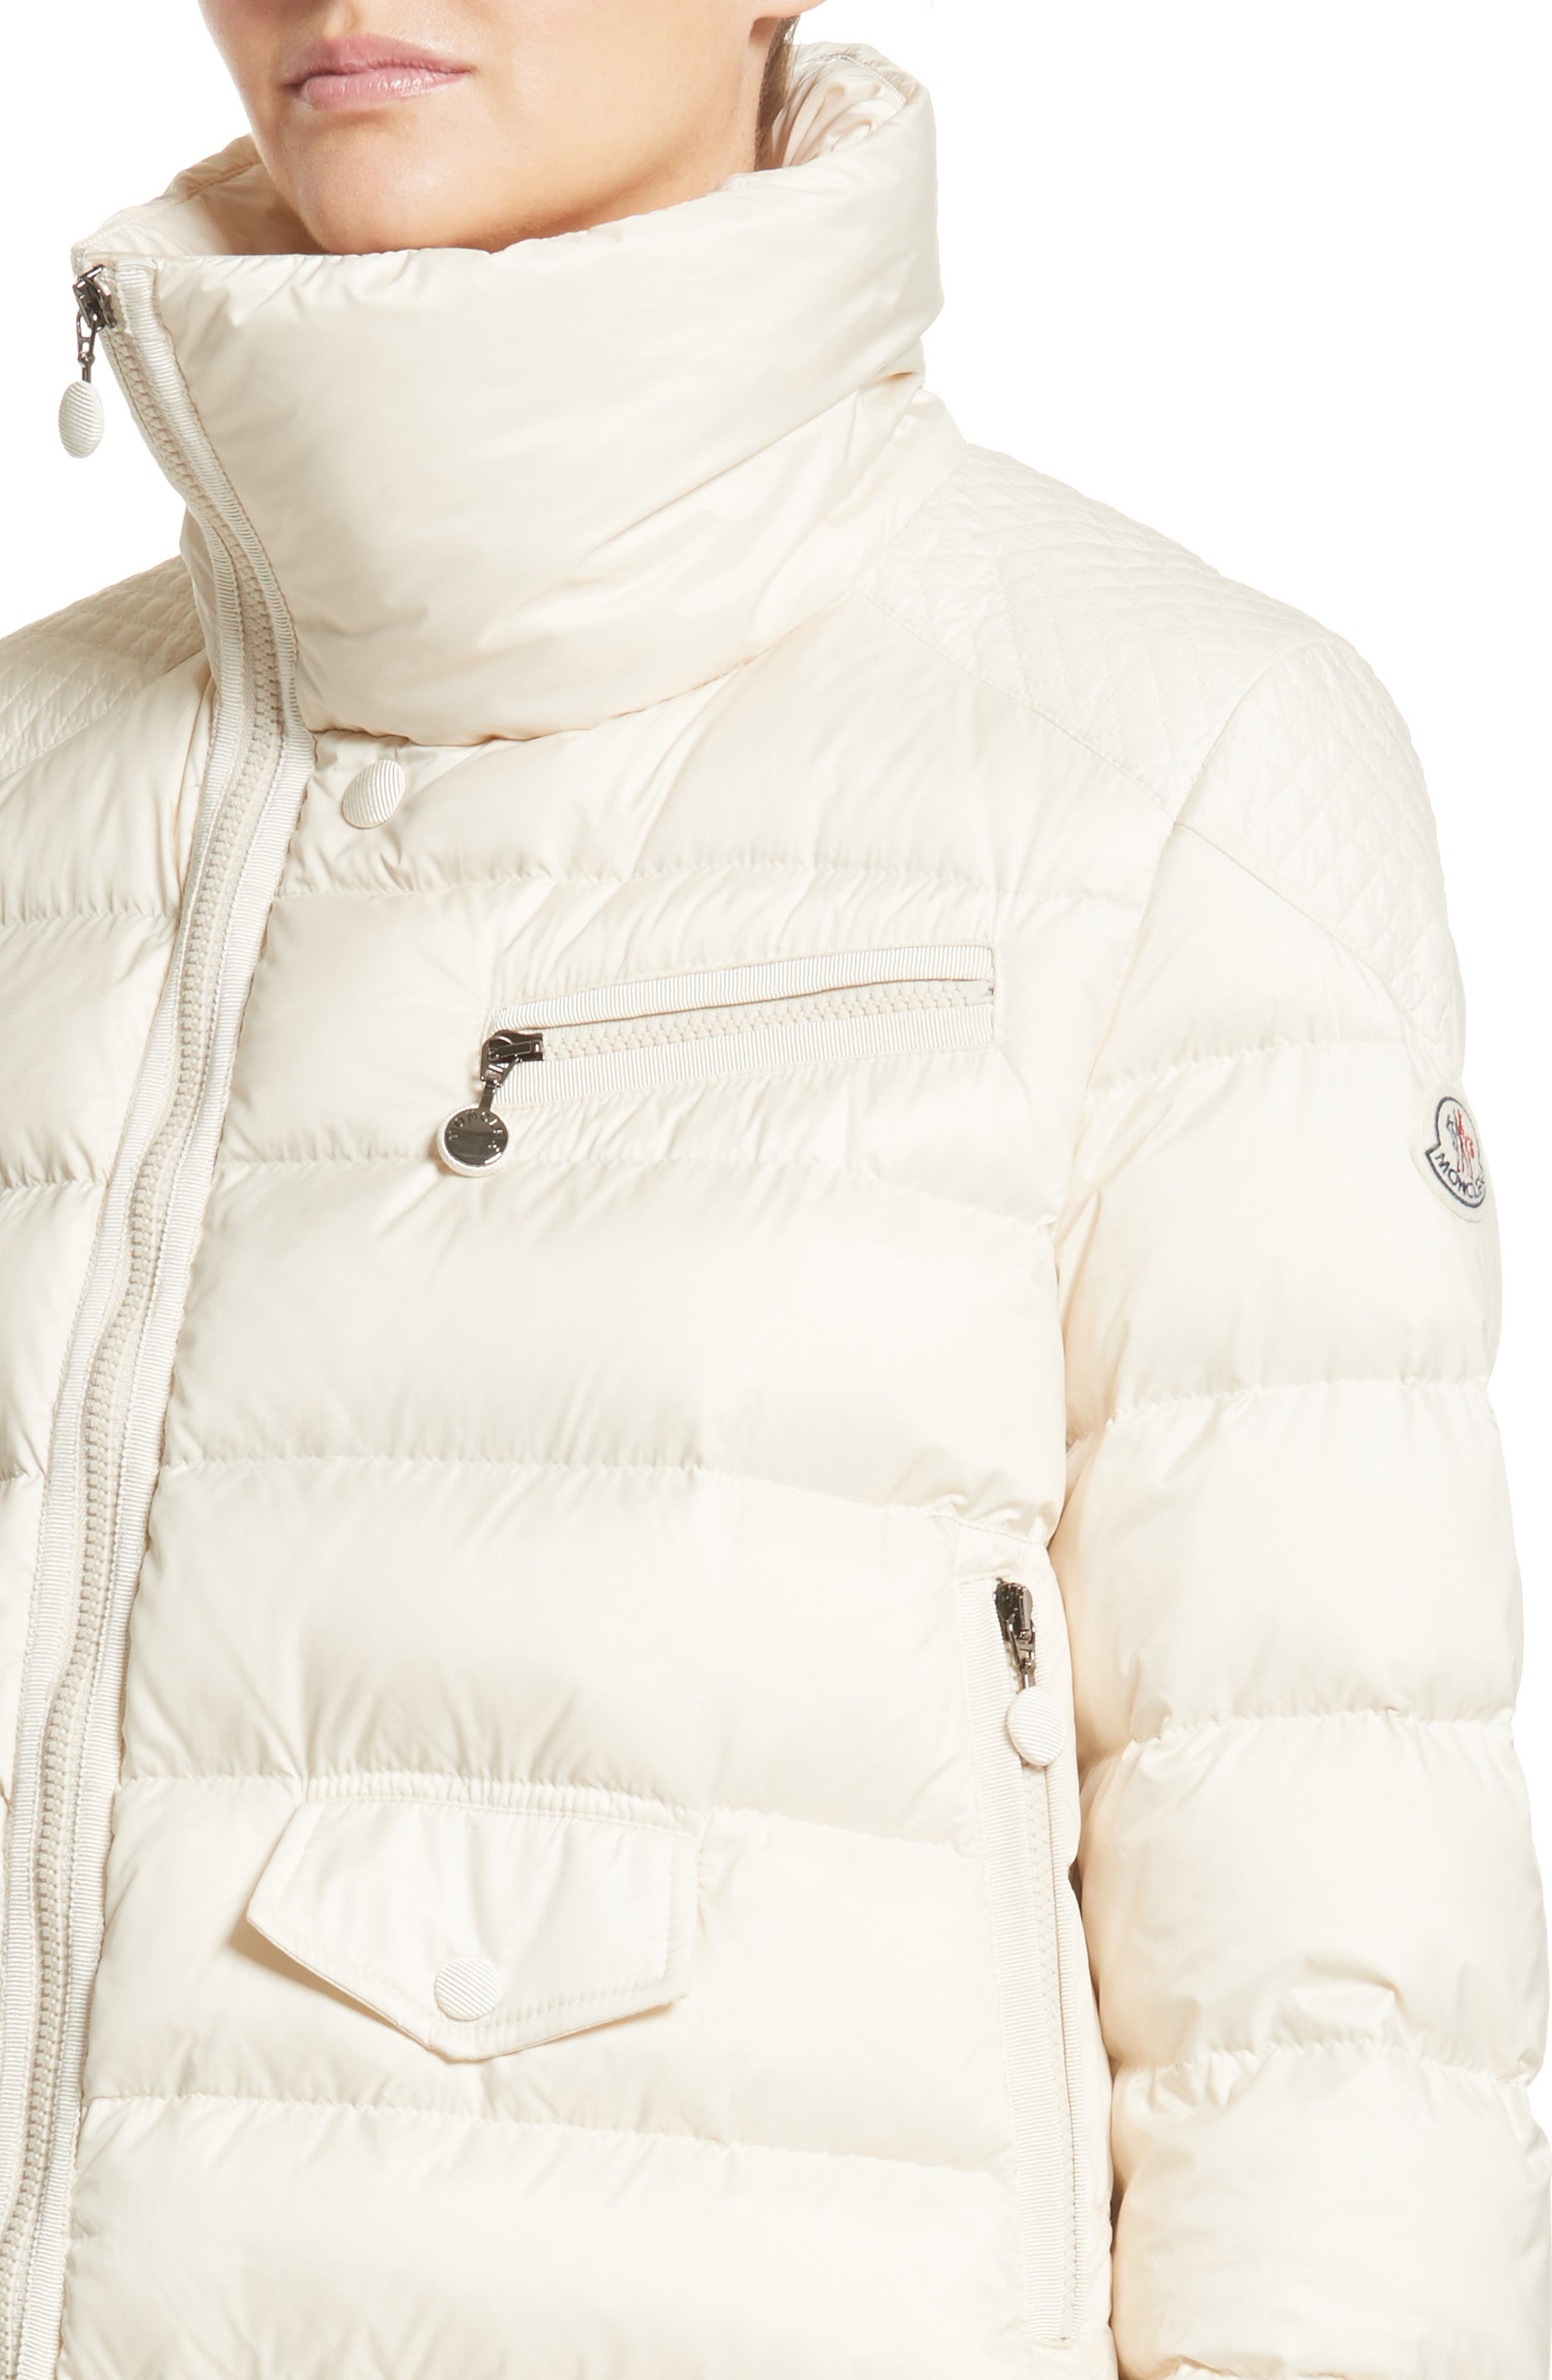 Margaret Down Puffer Jacket,                             Alternate thumbnail 4, color,                             Cream